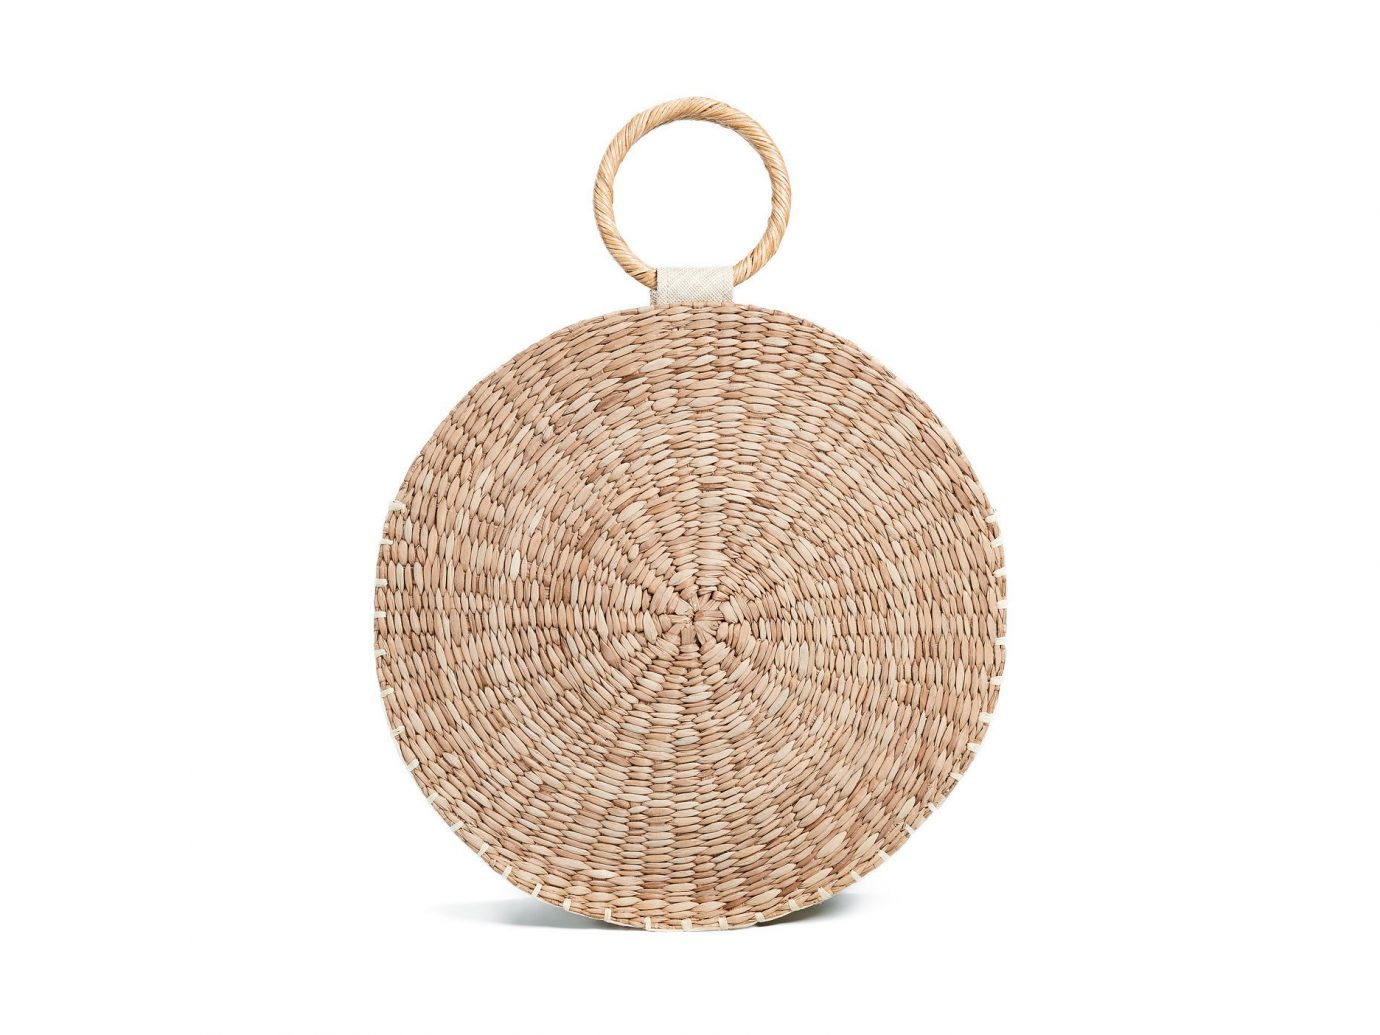 Packing Tips Style + Design Travel Shop container basket copper product design circle metal storage basket